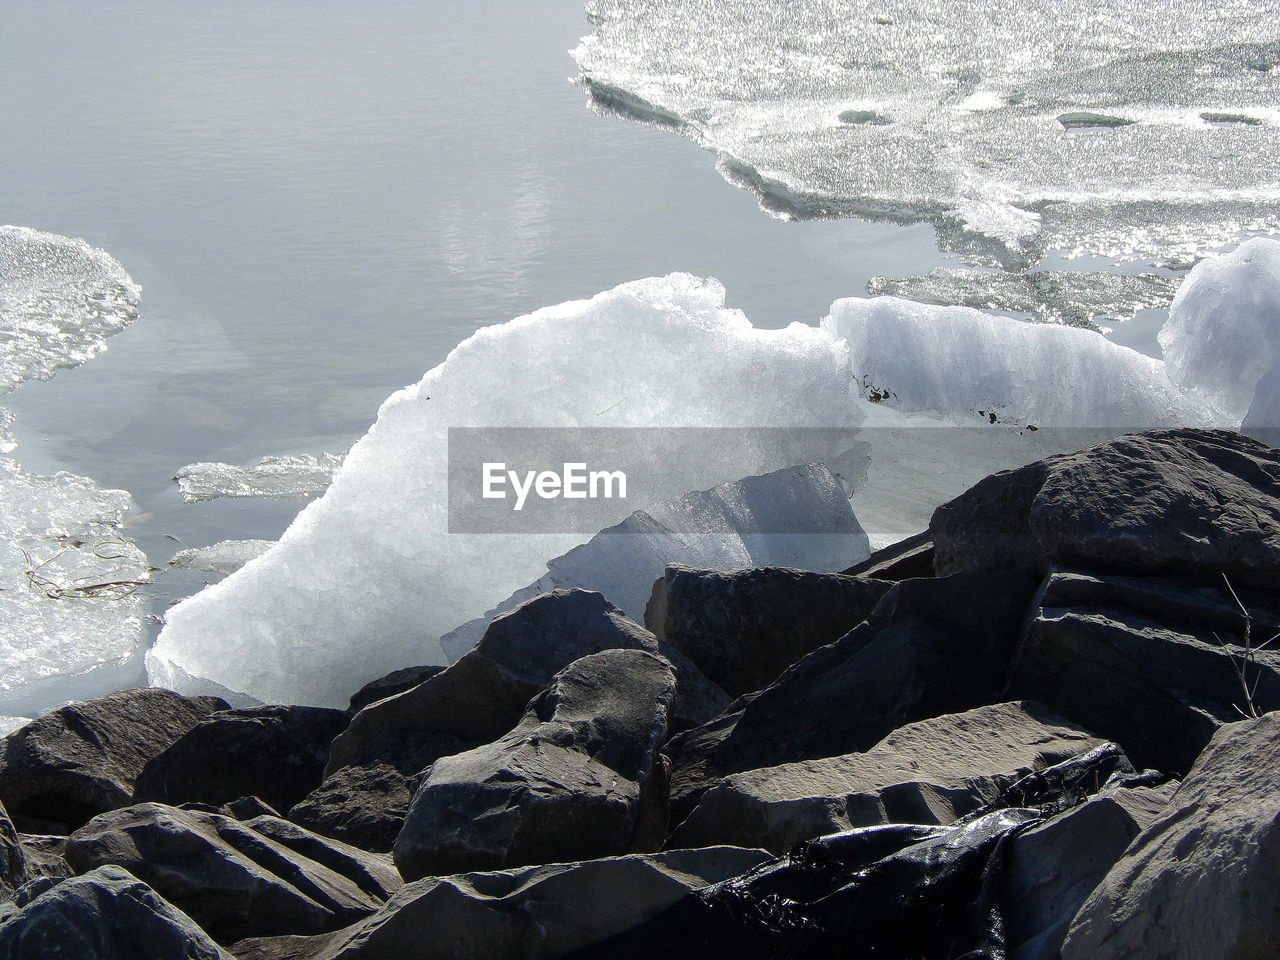 water, rock, sea, day, beauty in nature, nature, solid, frozen, ice, rock - object, no people, winter, cold temperature, scenics - nature, tranquility, snow, tranquil scene, outdoors, iceberg, melting, flowing water